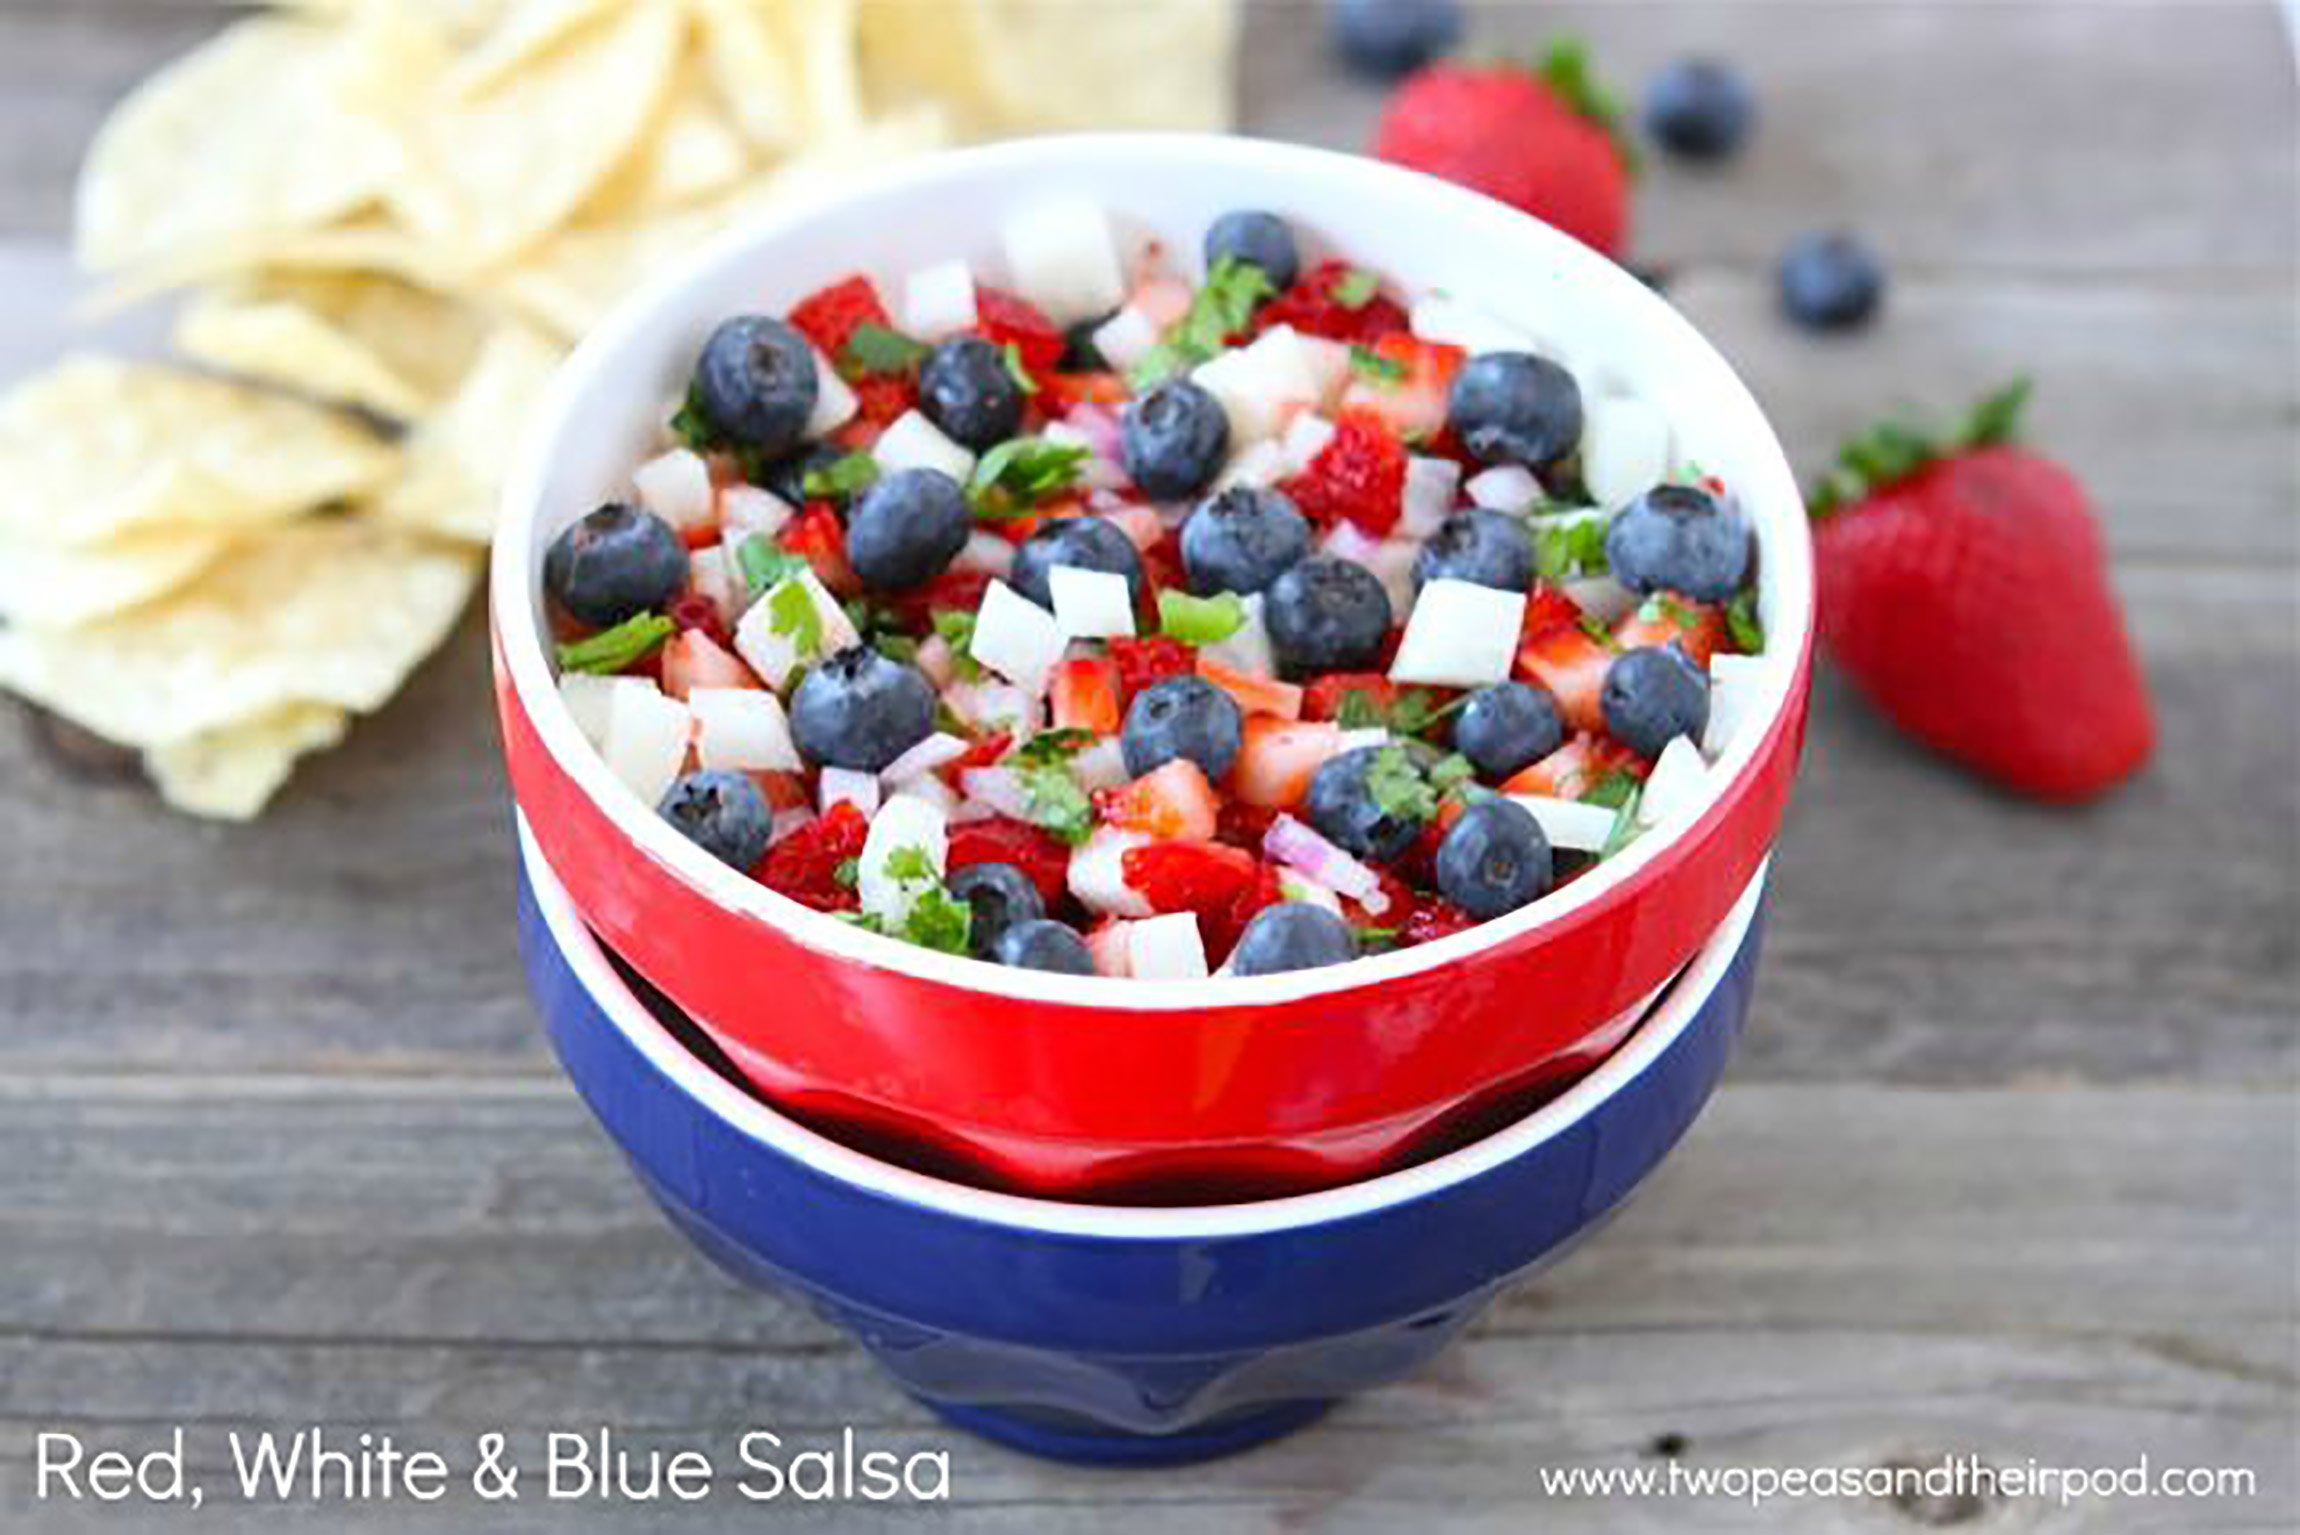 Healthy July 4th recipes: Red, White and Blue Salsa